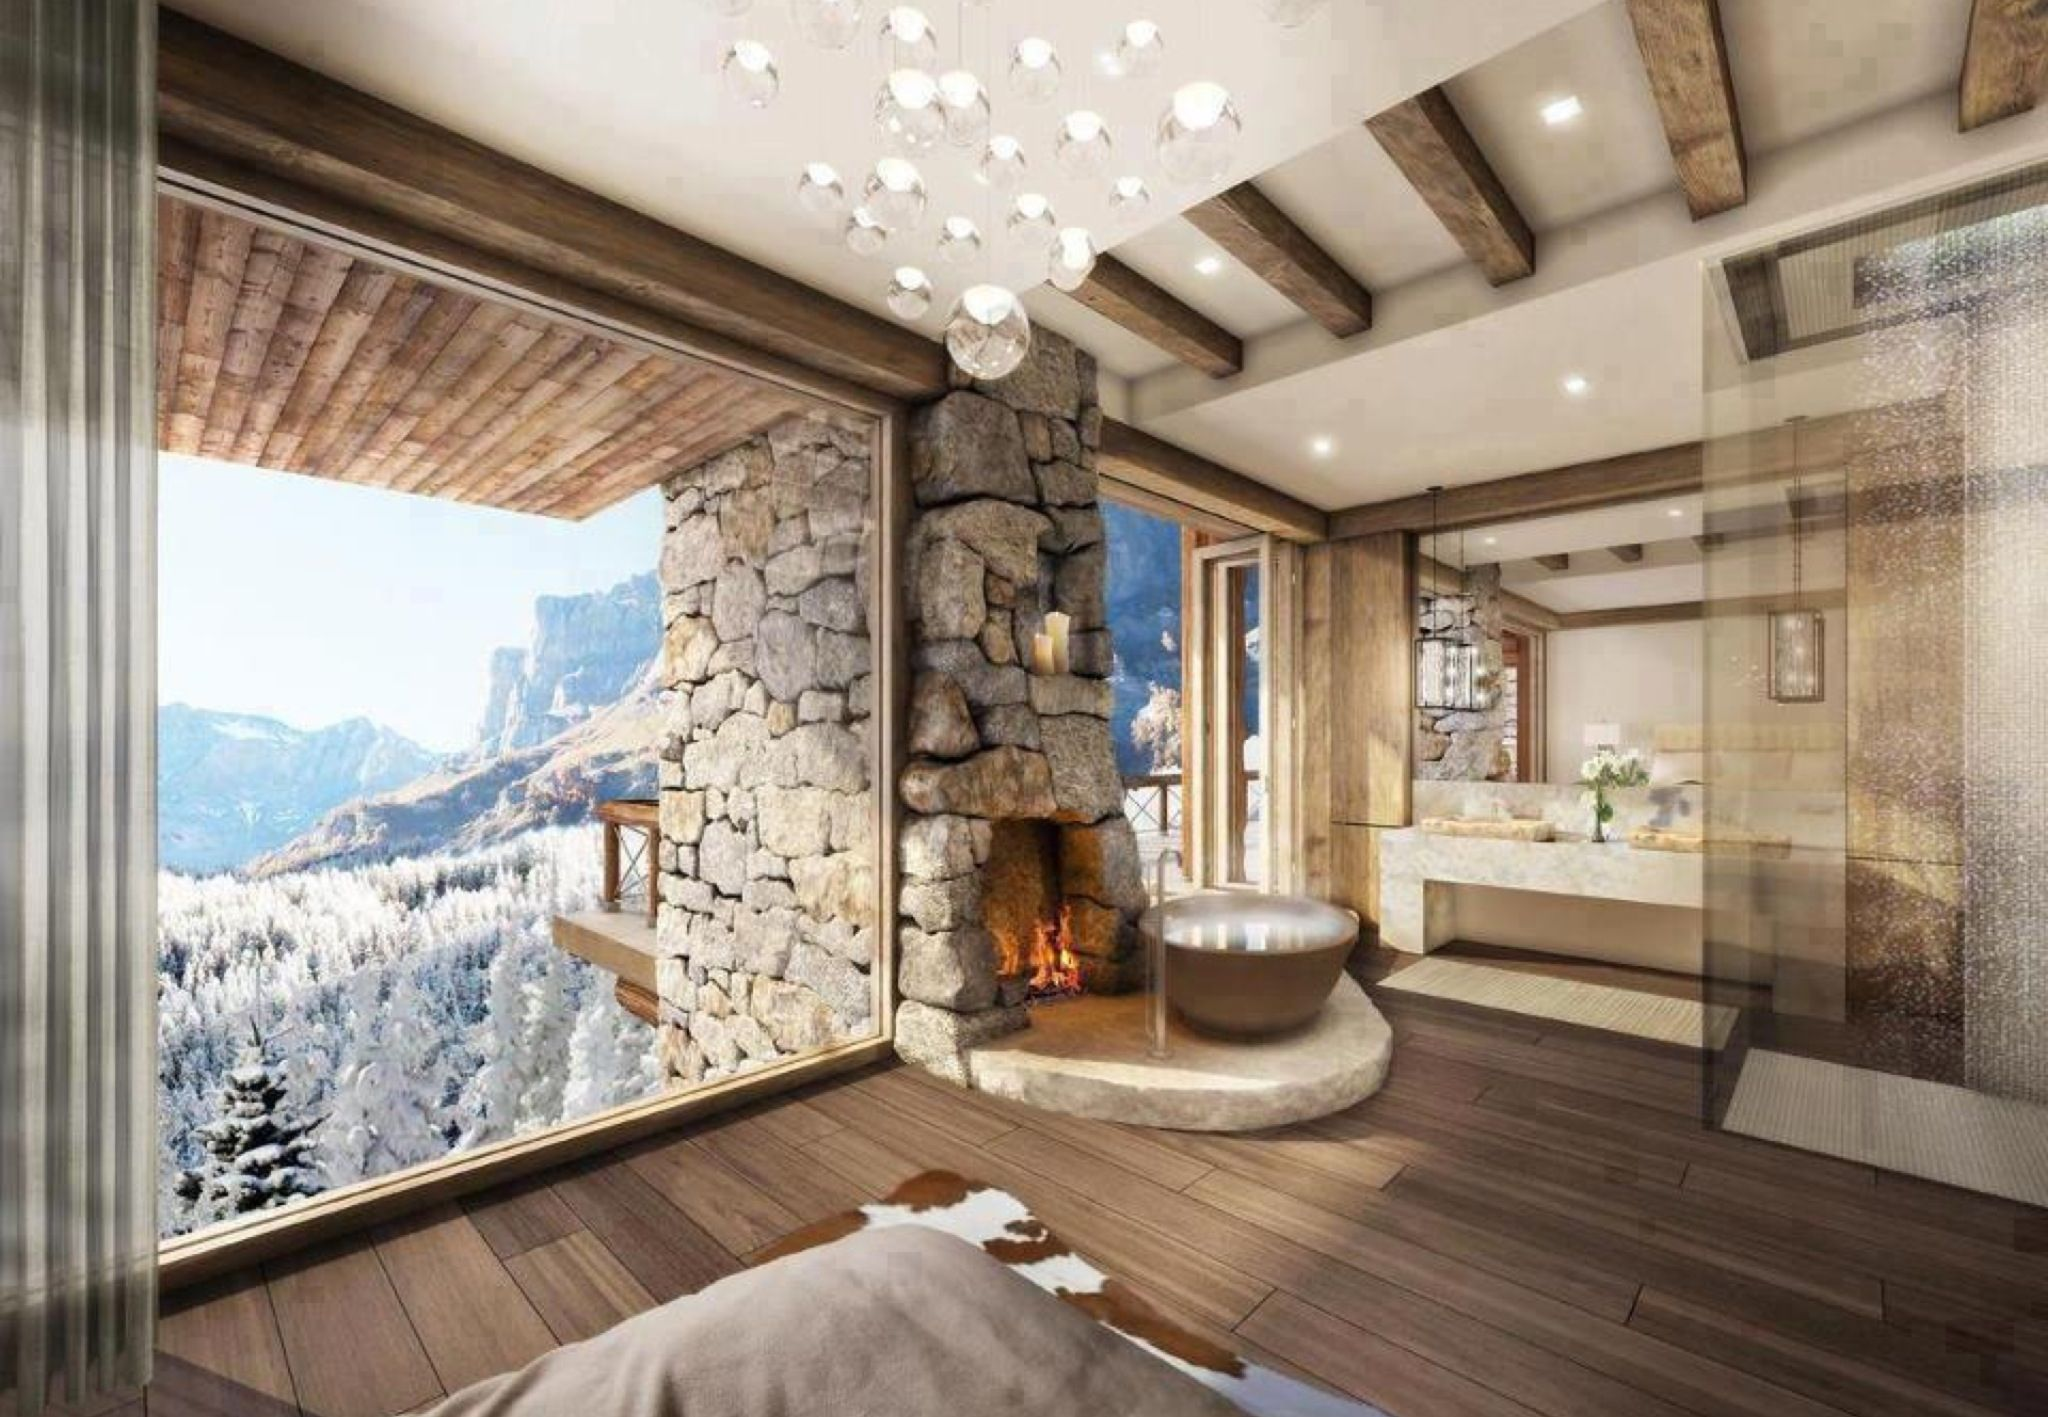 It S The Skiing Season Would You Rather Be Chilling In Your Chalet With Breathtaking Views Right Now Rustic House House Design Ensuite Bathroom Designs